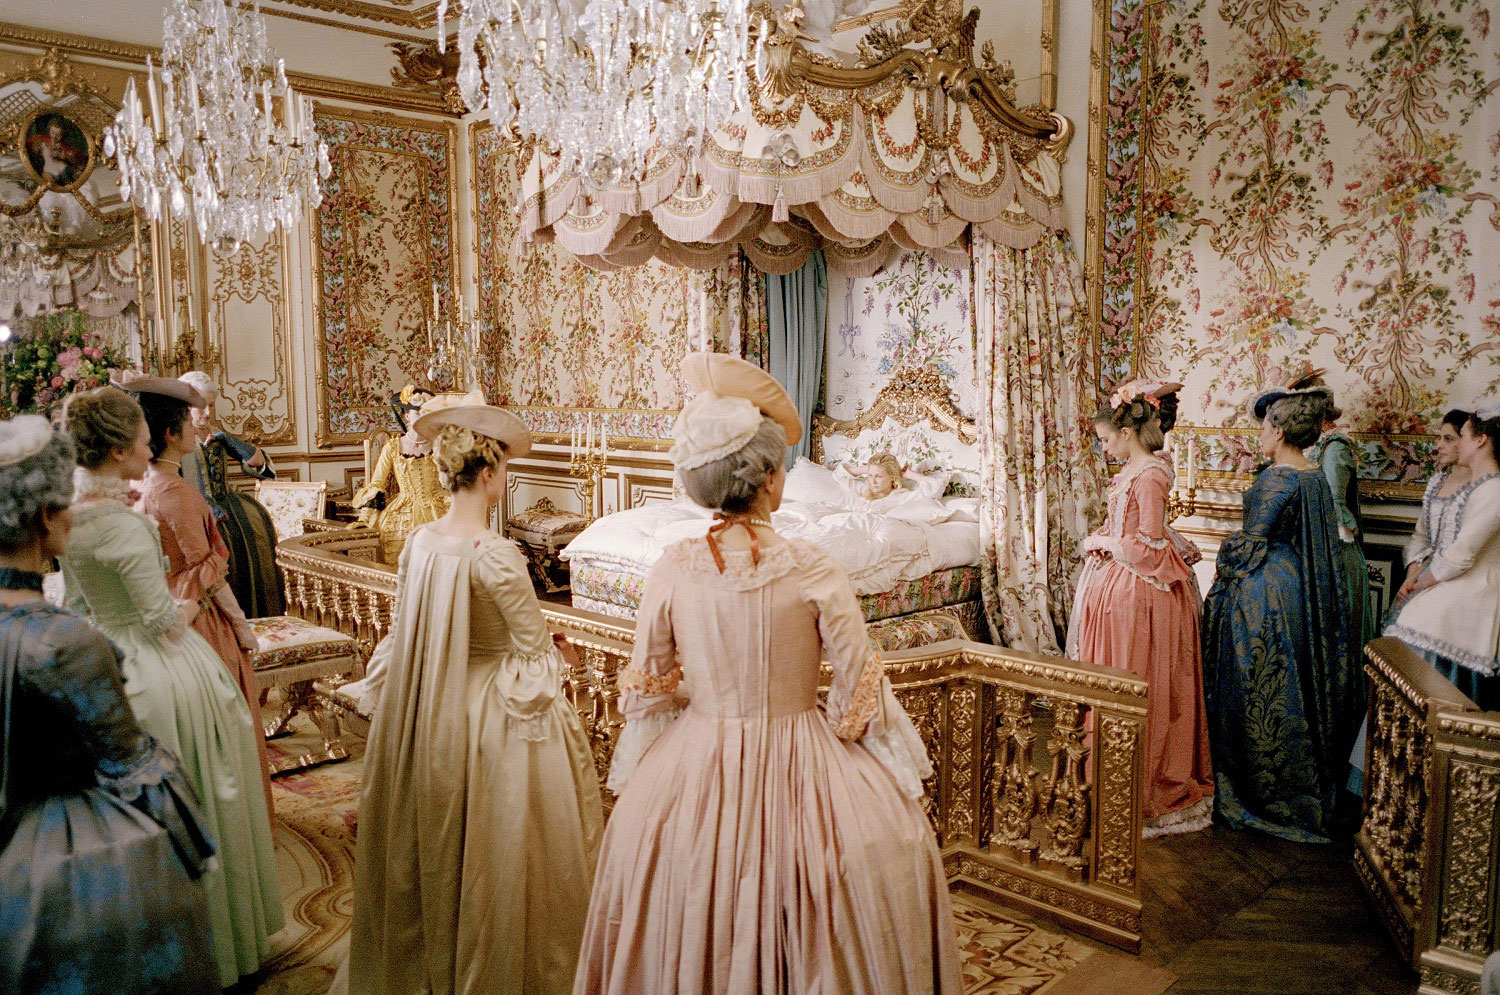 marie antoinette Marie antoinette is a 2006 historical drama film written and directed by sofia coppola and starring kirsten dunstit is based on the life of queen marie antoinette in the years leading up to.